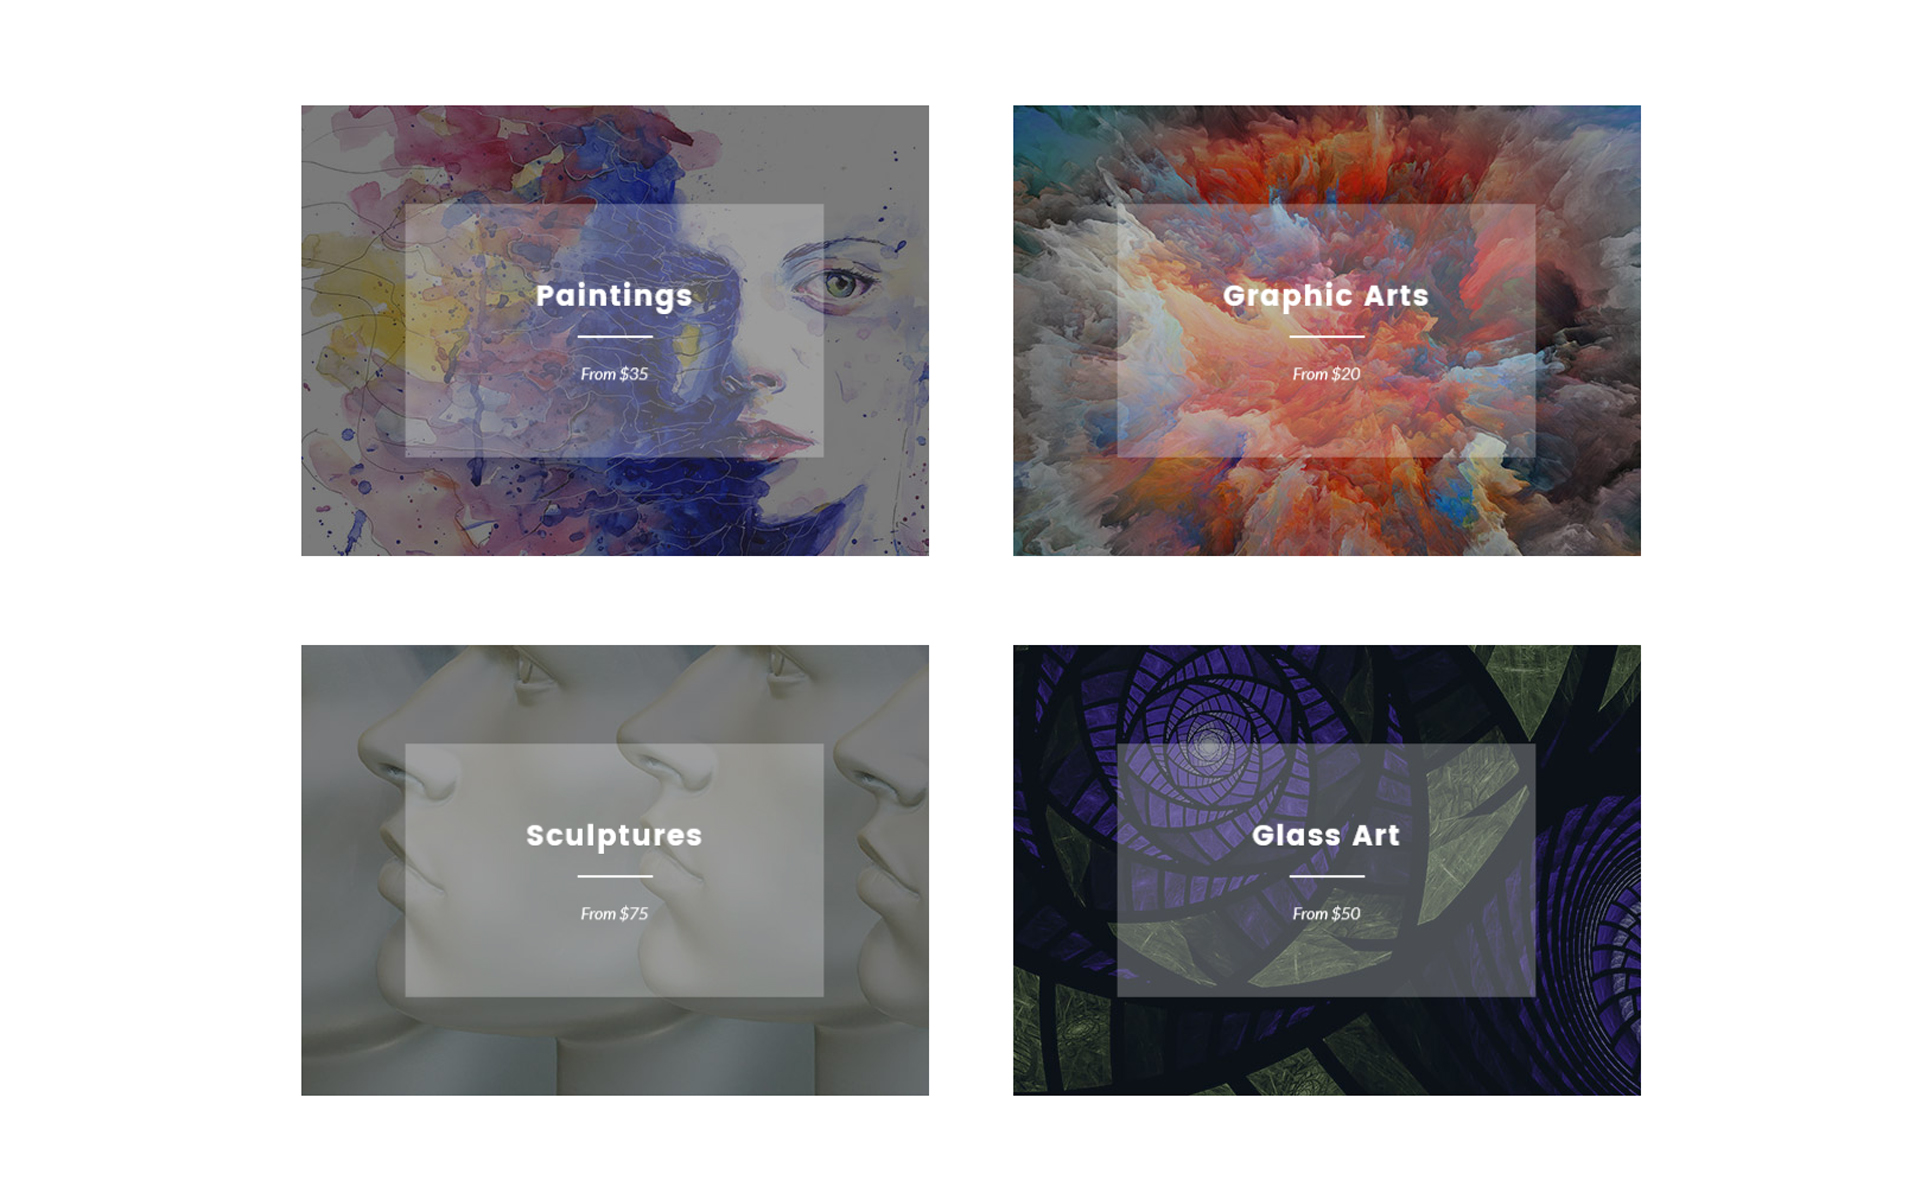 Free Bootstrap Templates for Next Responsive Sites Project